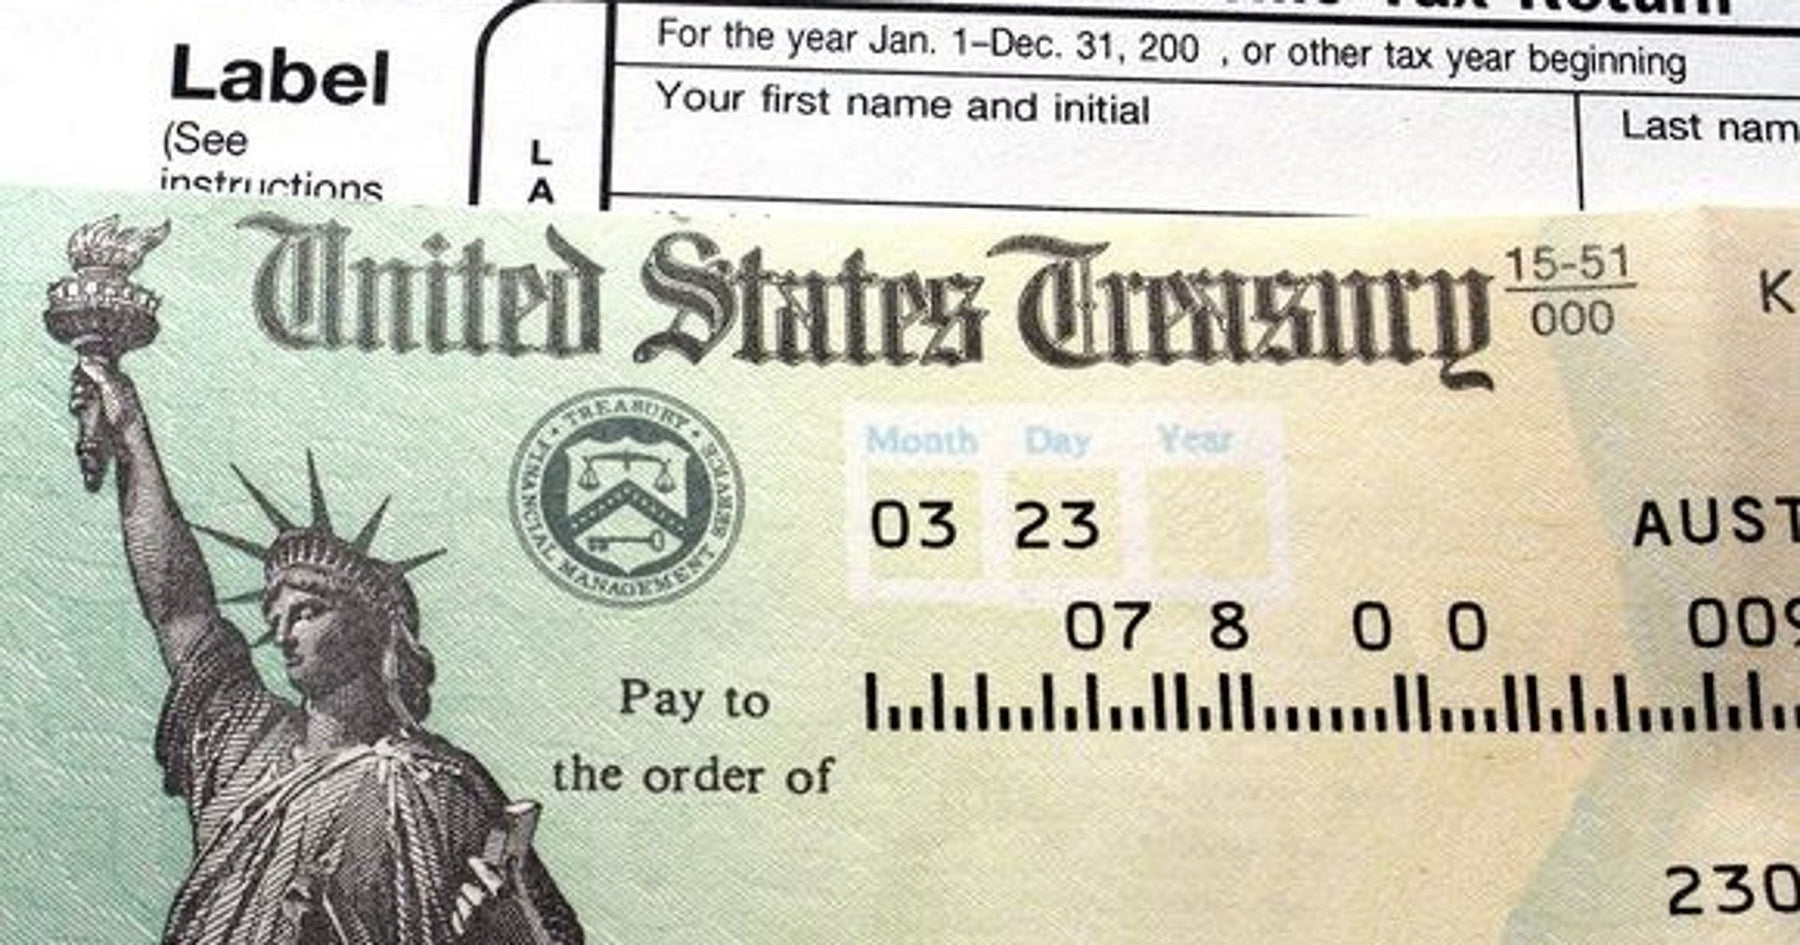 How To Get The Most Out Of Your Tax Refund